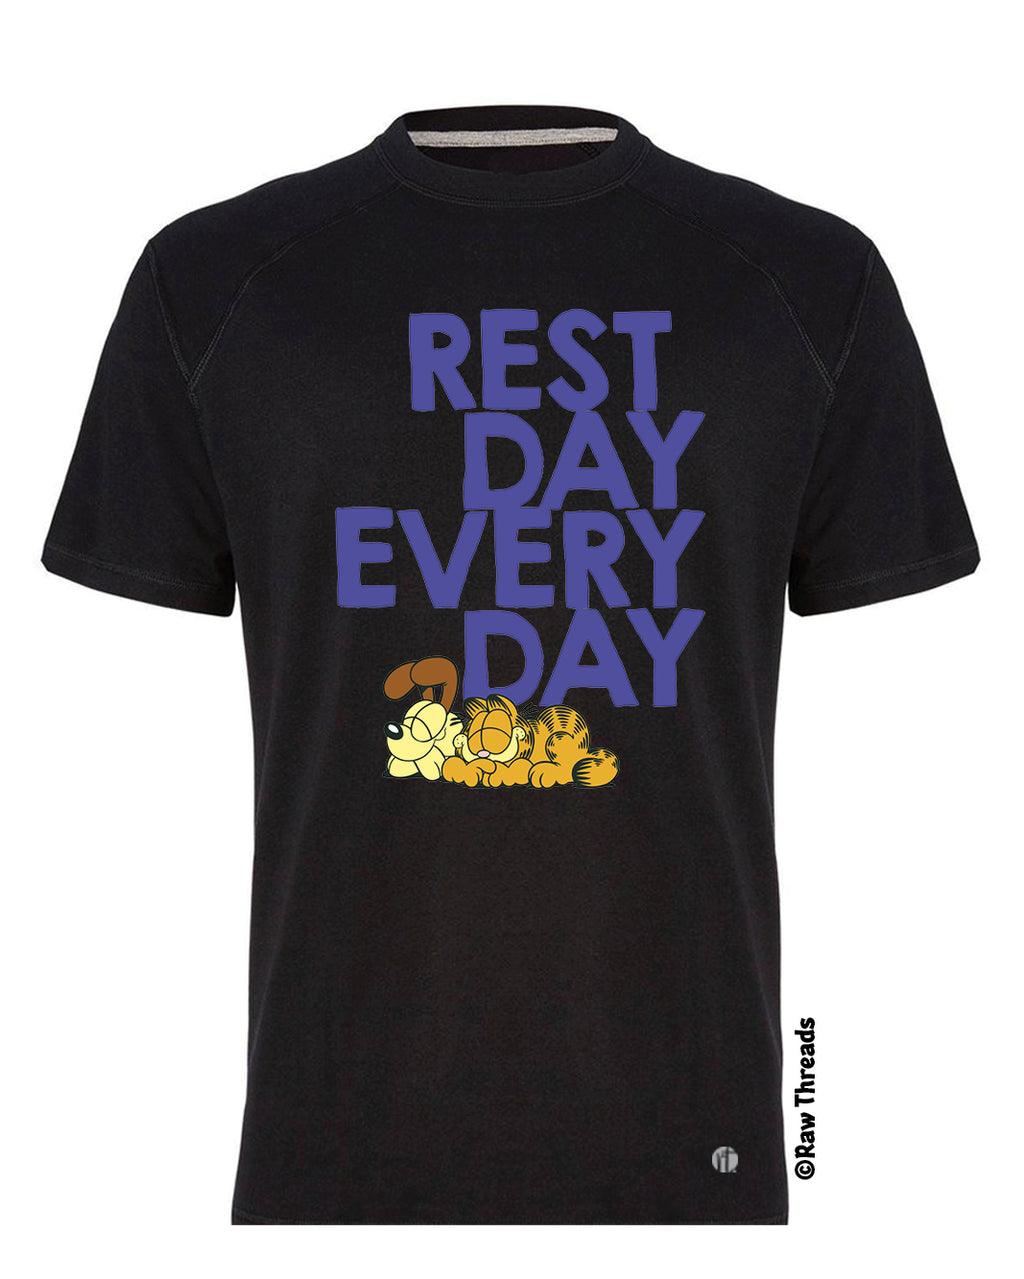 Garfield's Rest Day Every Day